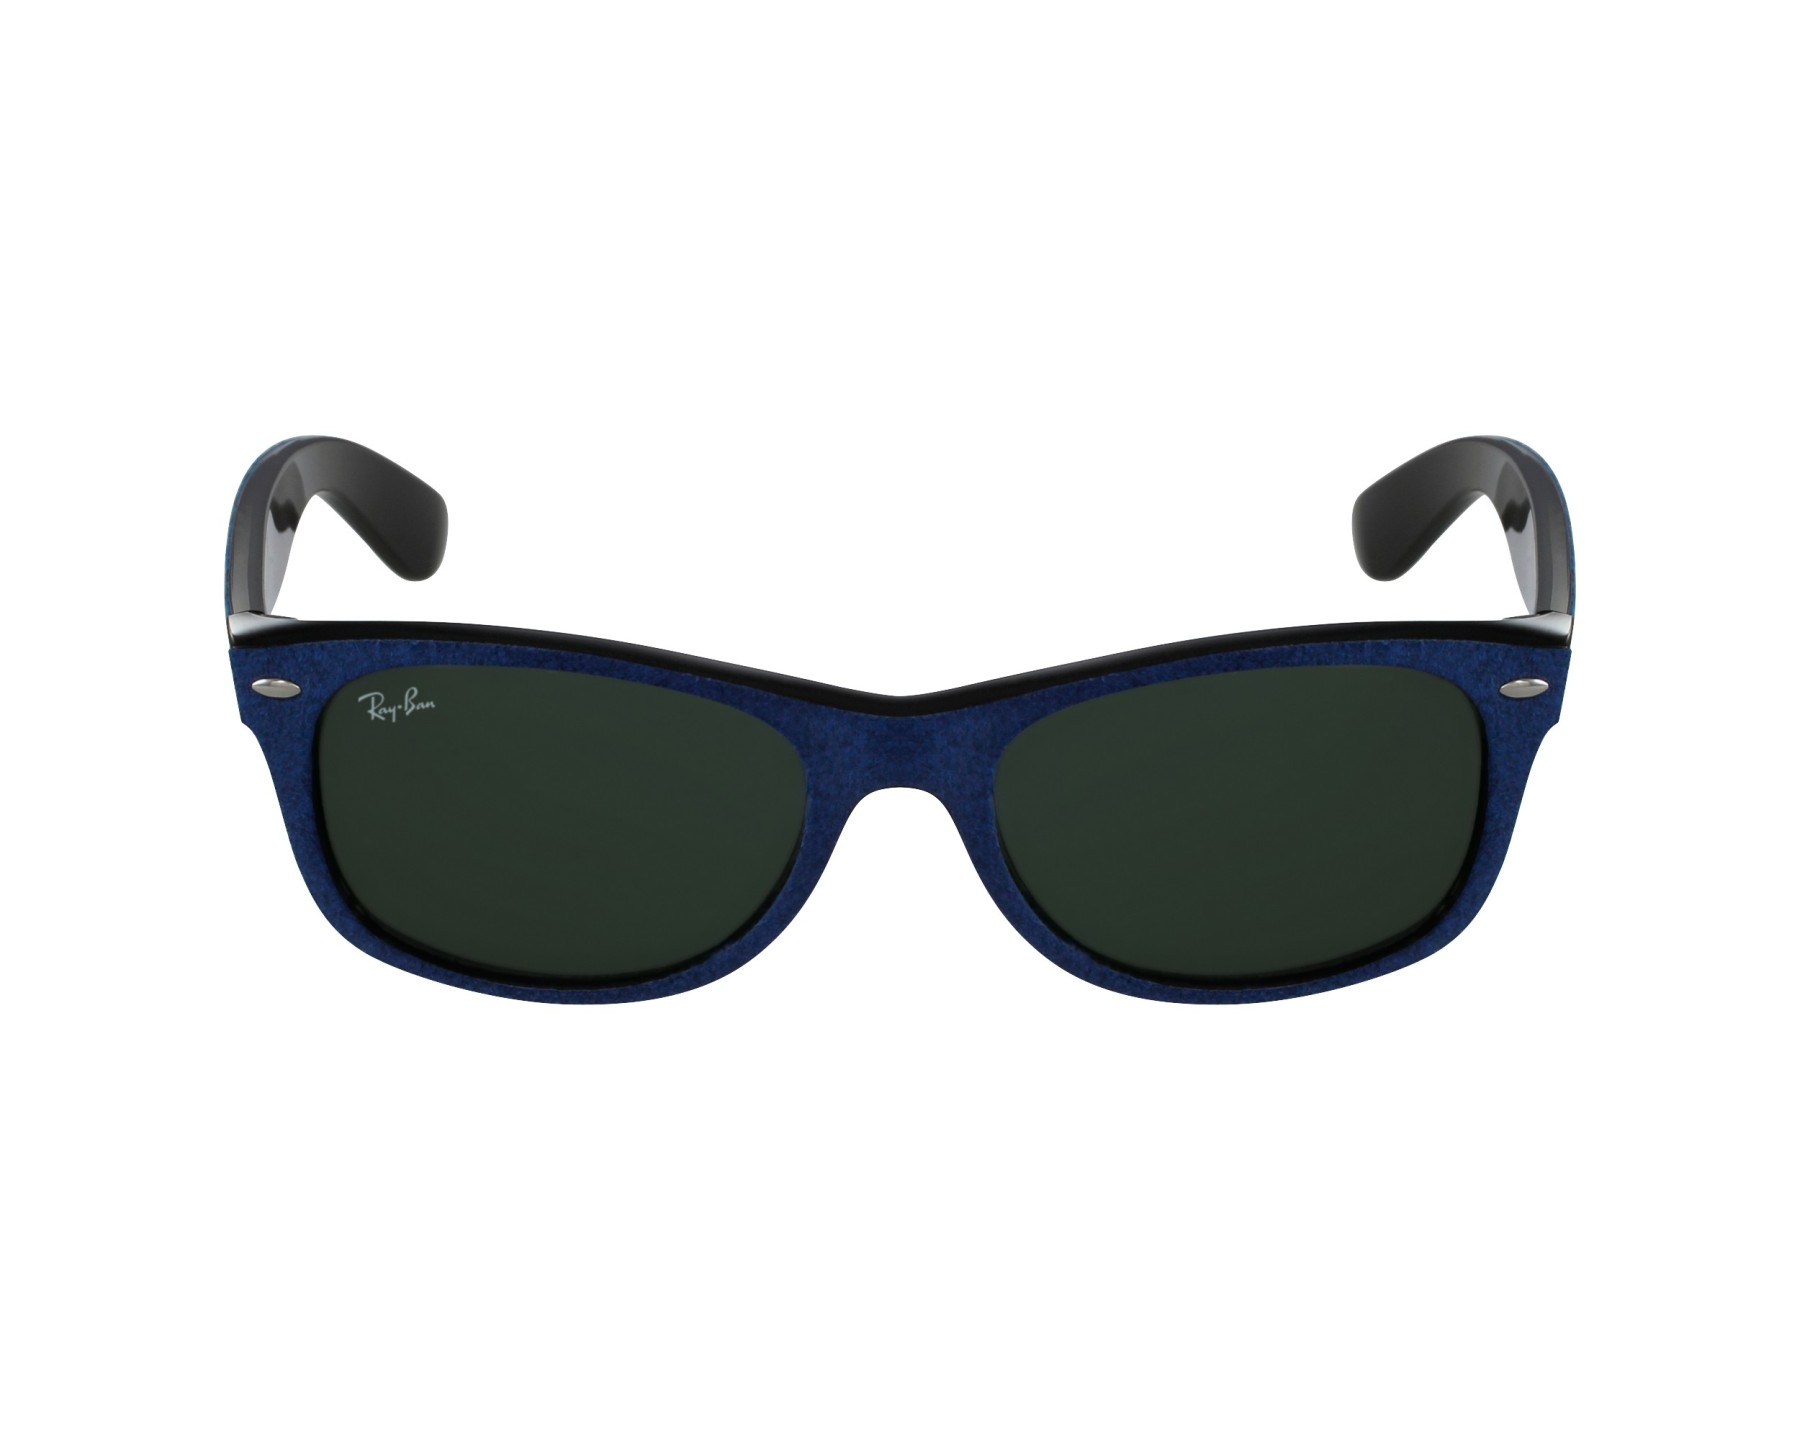 d7d7eb4c383 Sunglasses Ray-Ban RB-2132 6239 52-18 Blue Black profile view